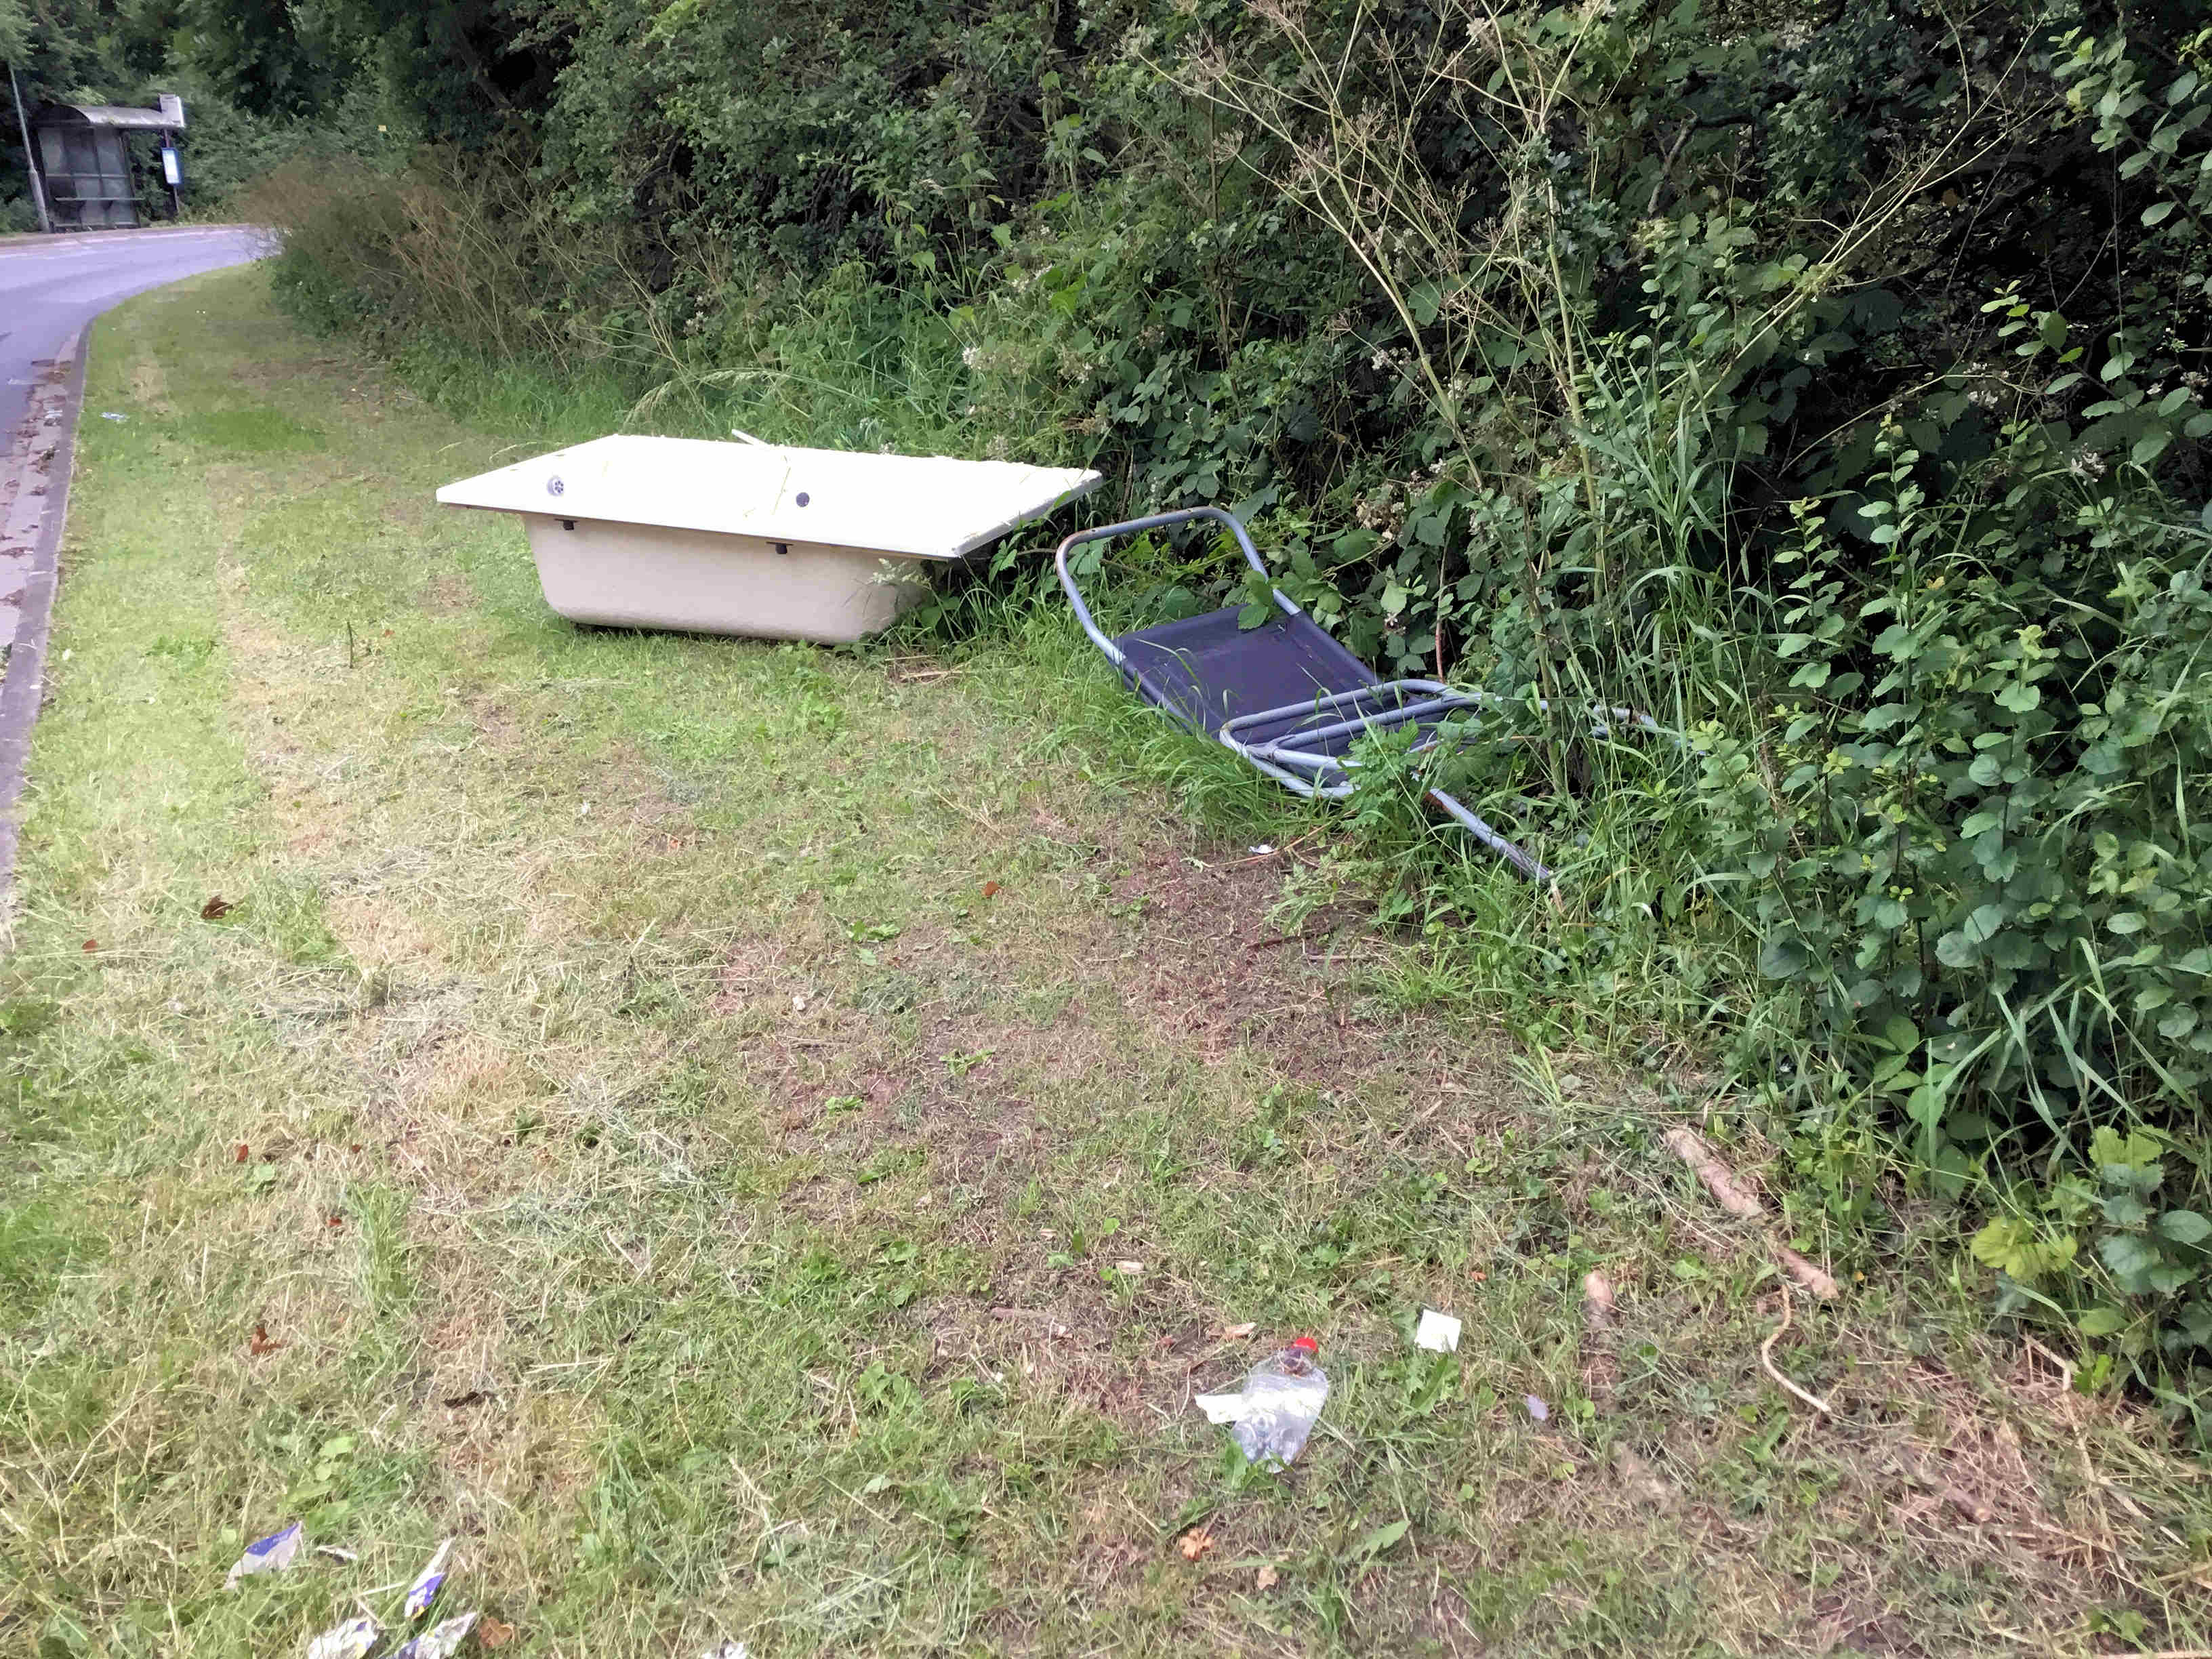 Bath and seat fly tipped on Foxwood Lane near ravine. CCTV footage will eb scrutinised to see if the culprits can be identified. The on the spot fine for fly tipping was recently raised to £400.